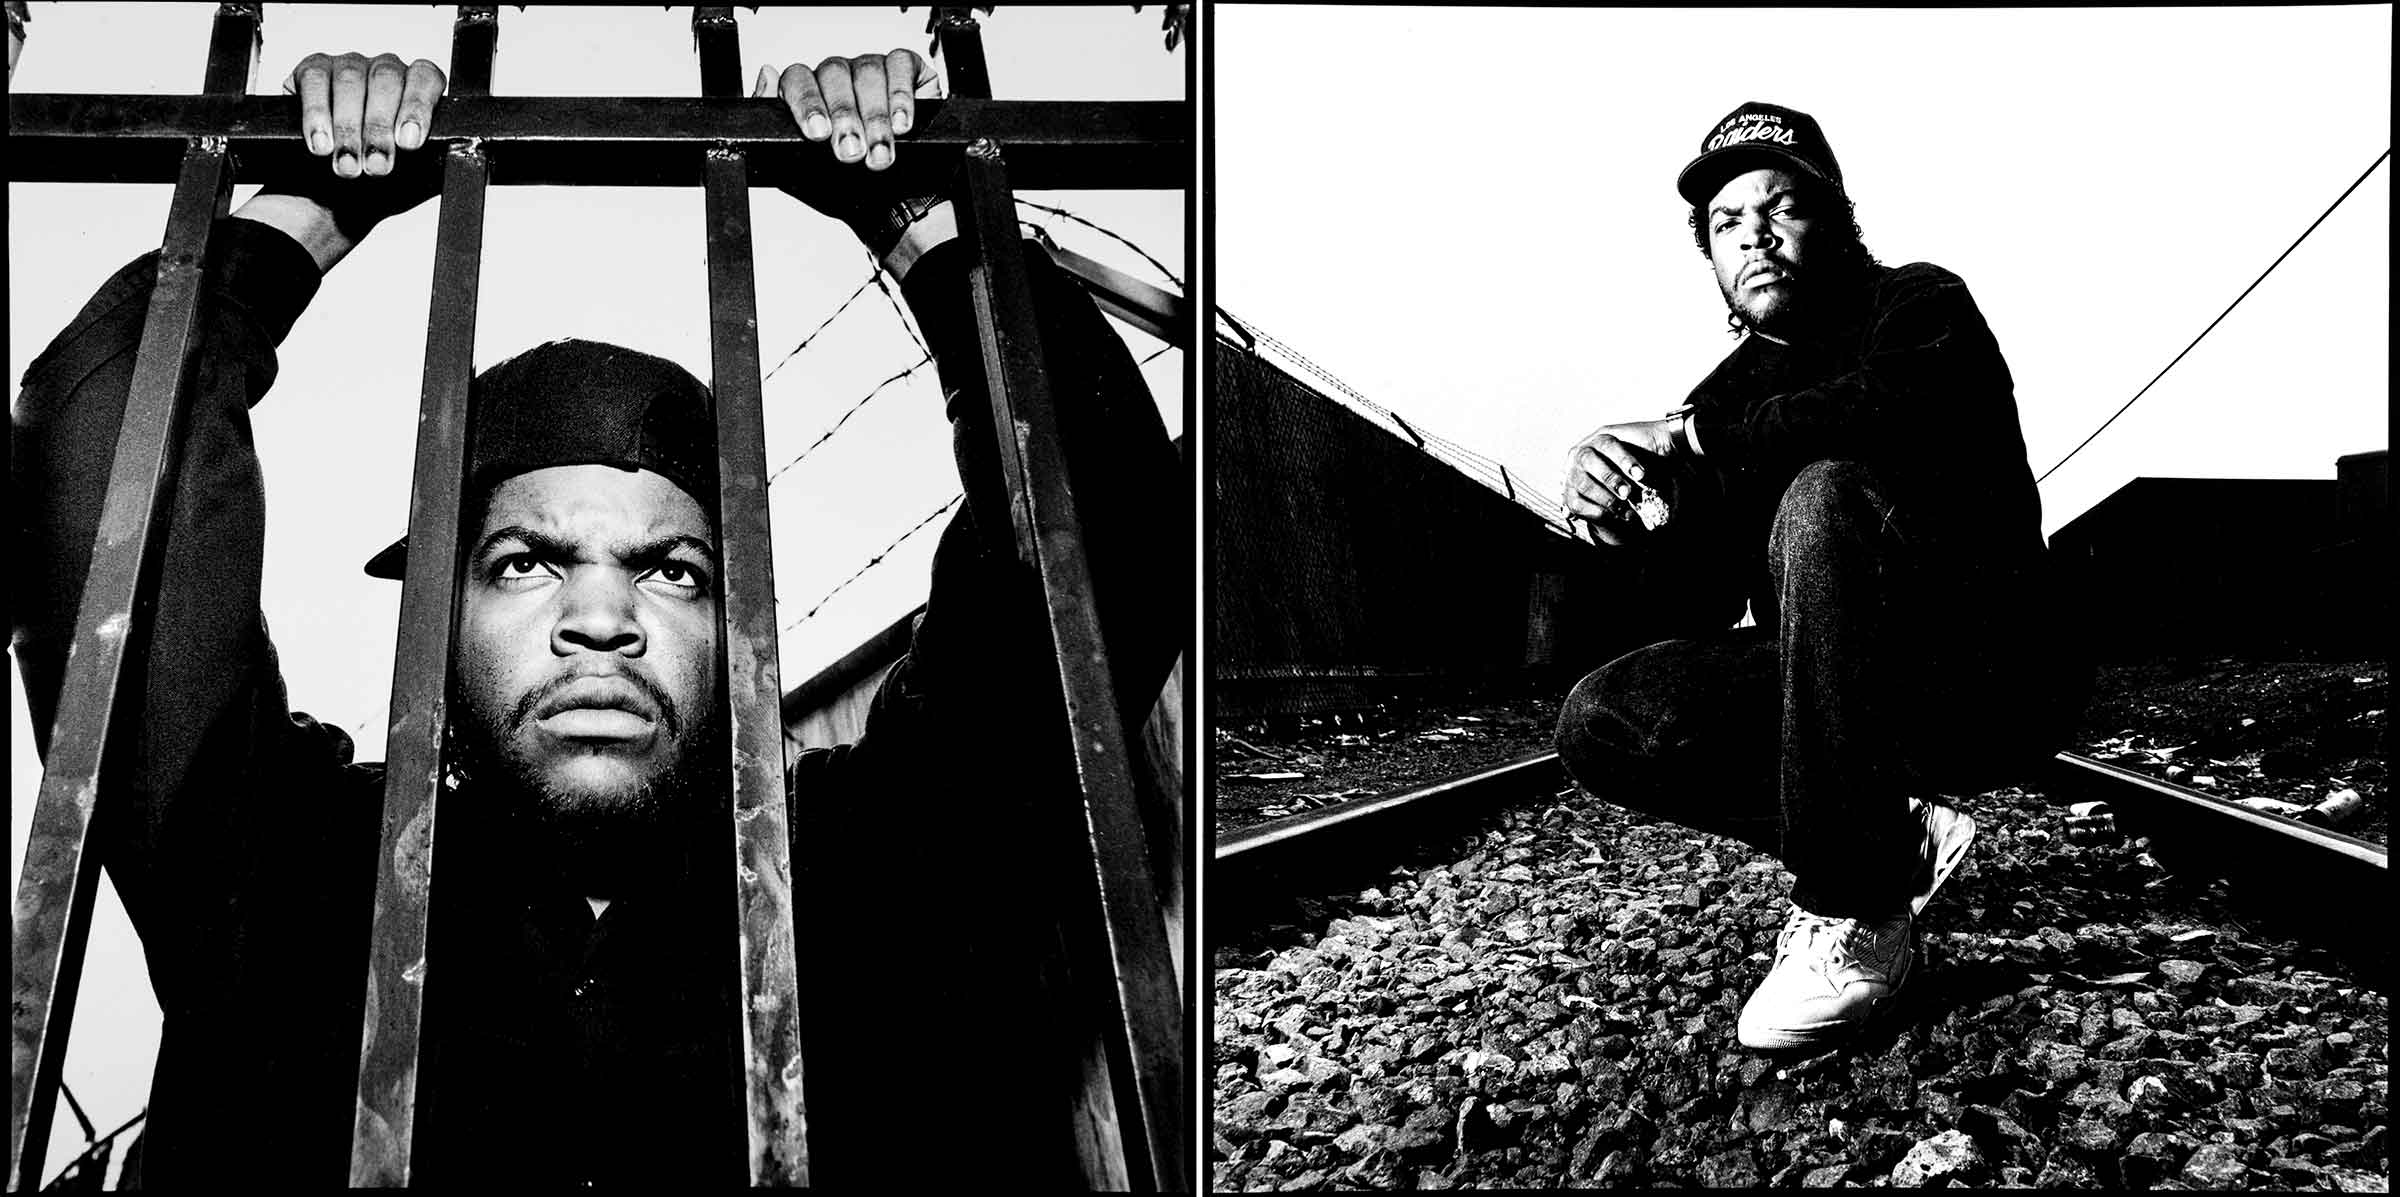 Port-Smale-Ice-Cube-13b